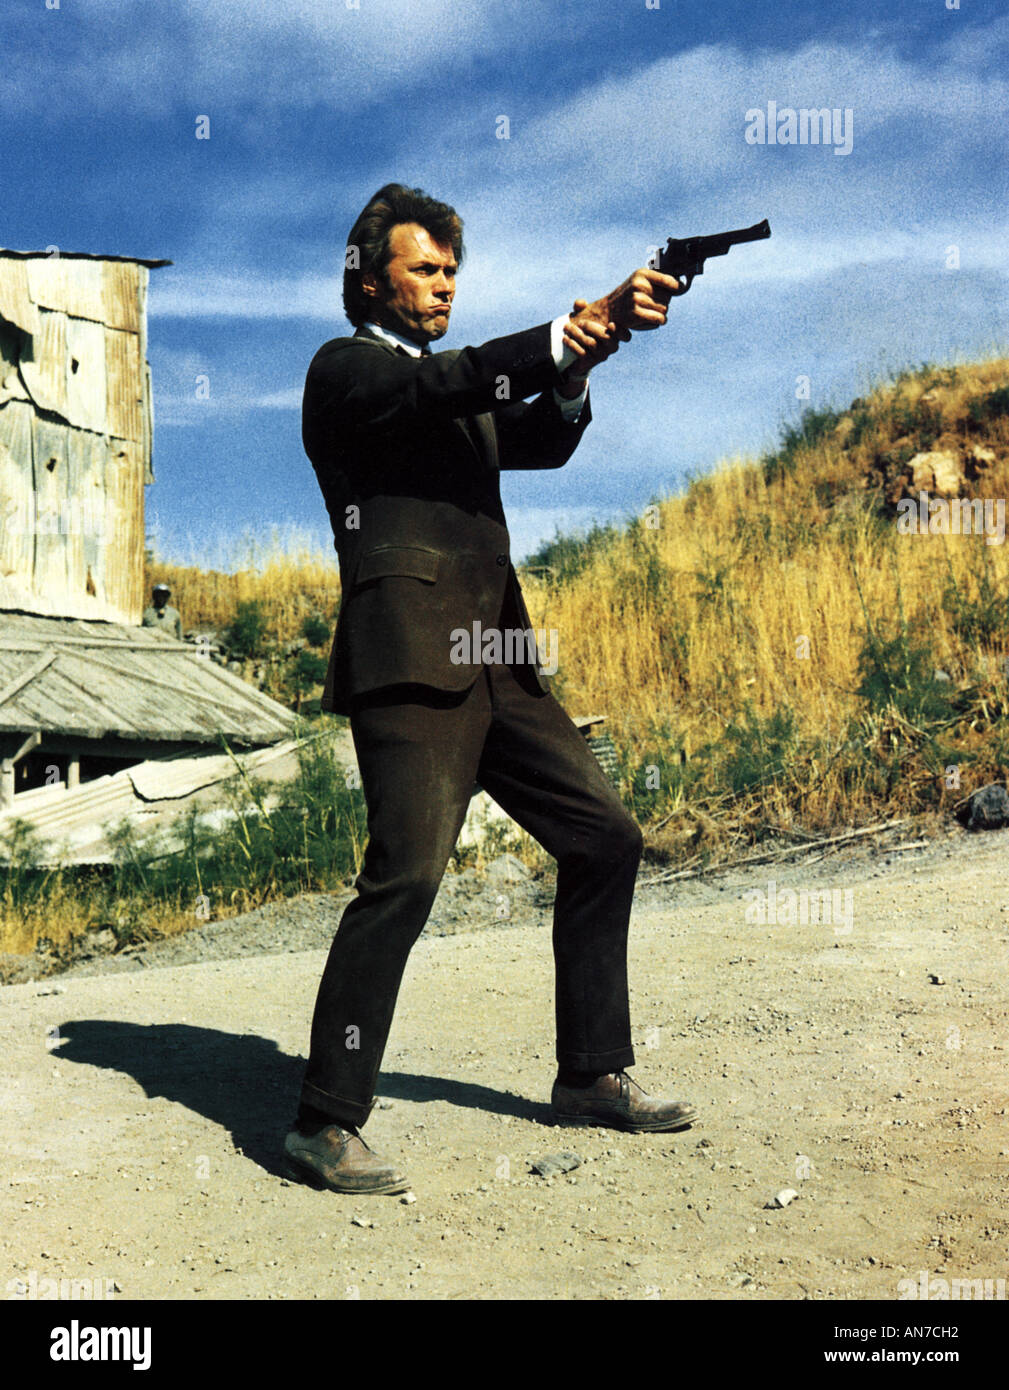 DIRTY HARRY 1971 Warner film with Clint Eastwood - Stock Image